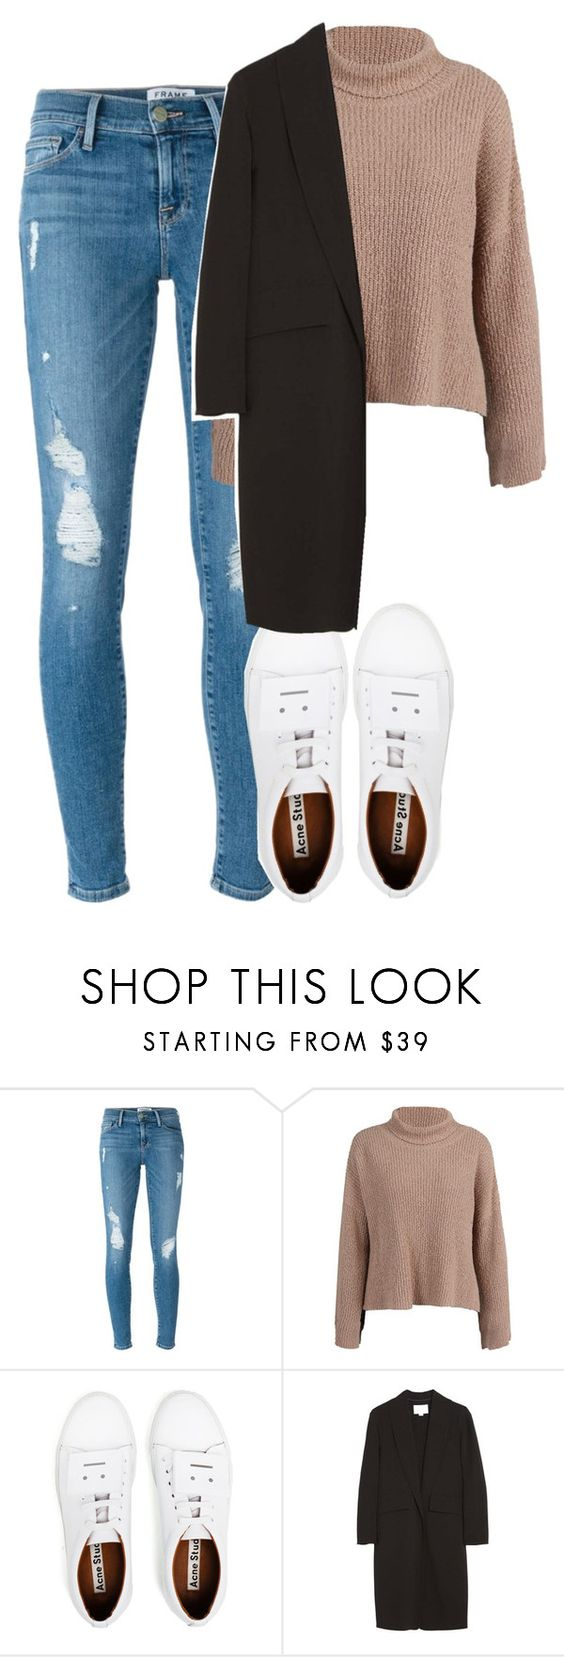 """Untitled #318"" by chandele ❤ liked on Polyvore featuring Frame Denim, Acne Studios and Alexander Wang"